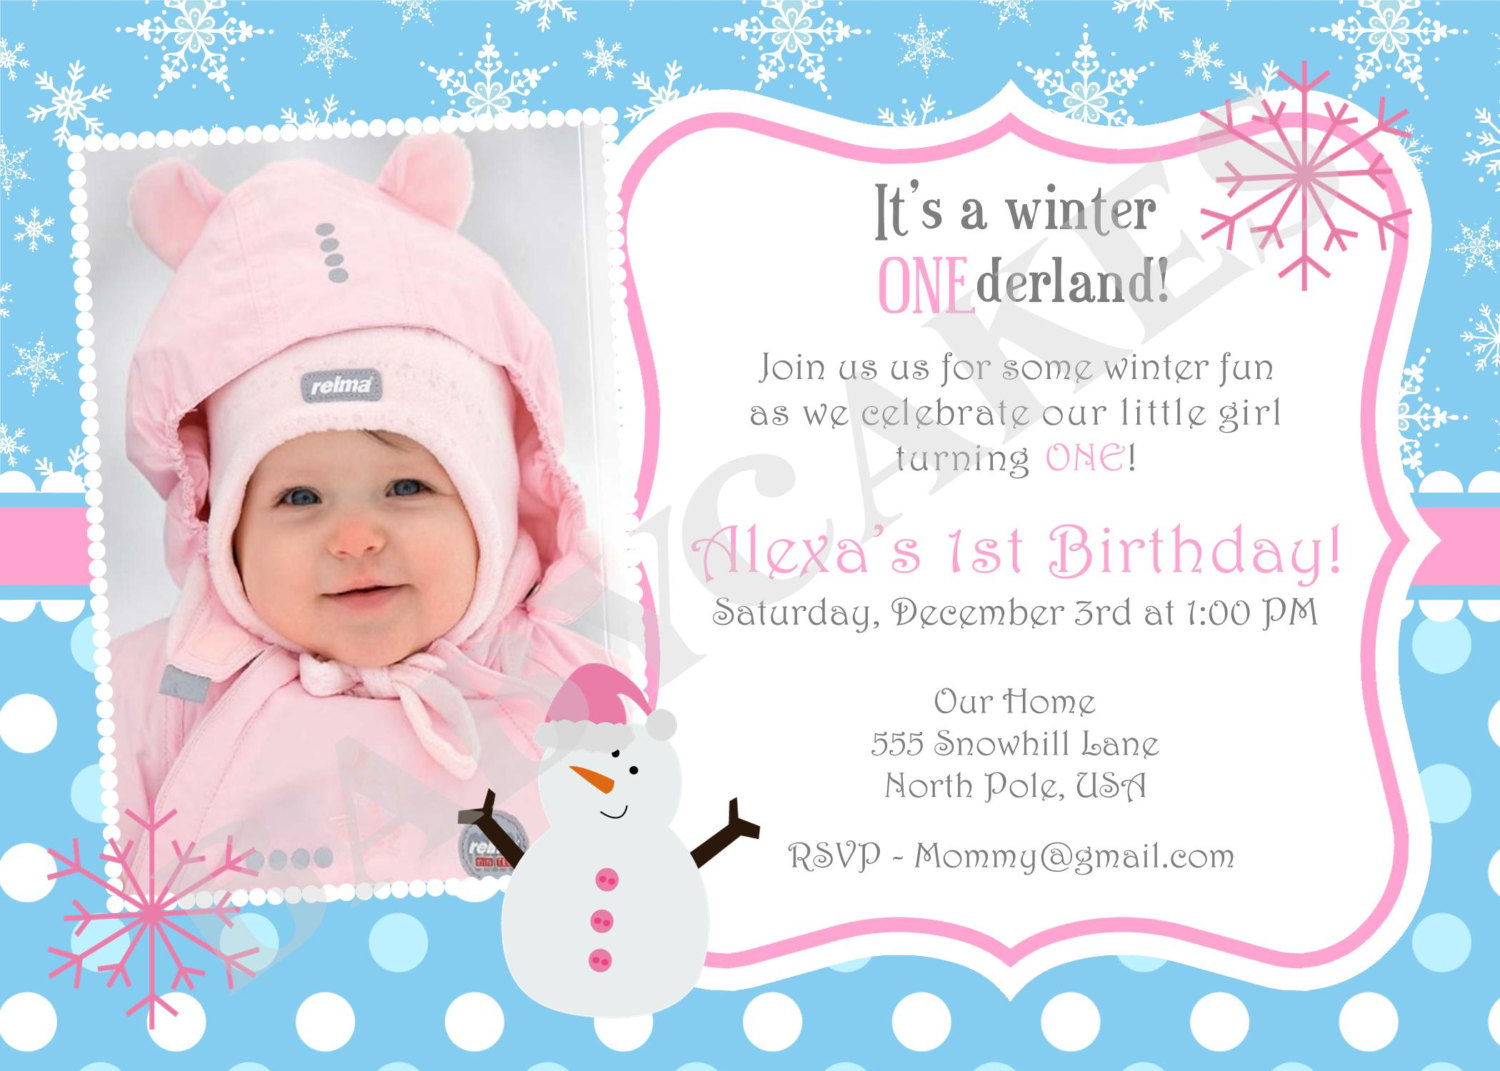 2nd birthday party invitation wording samples ; birthday__outstanding_2nd_birthday_invitations_sayings_inspiration_5-1